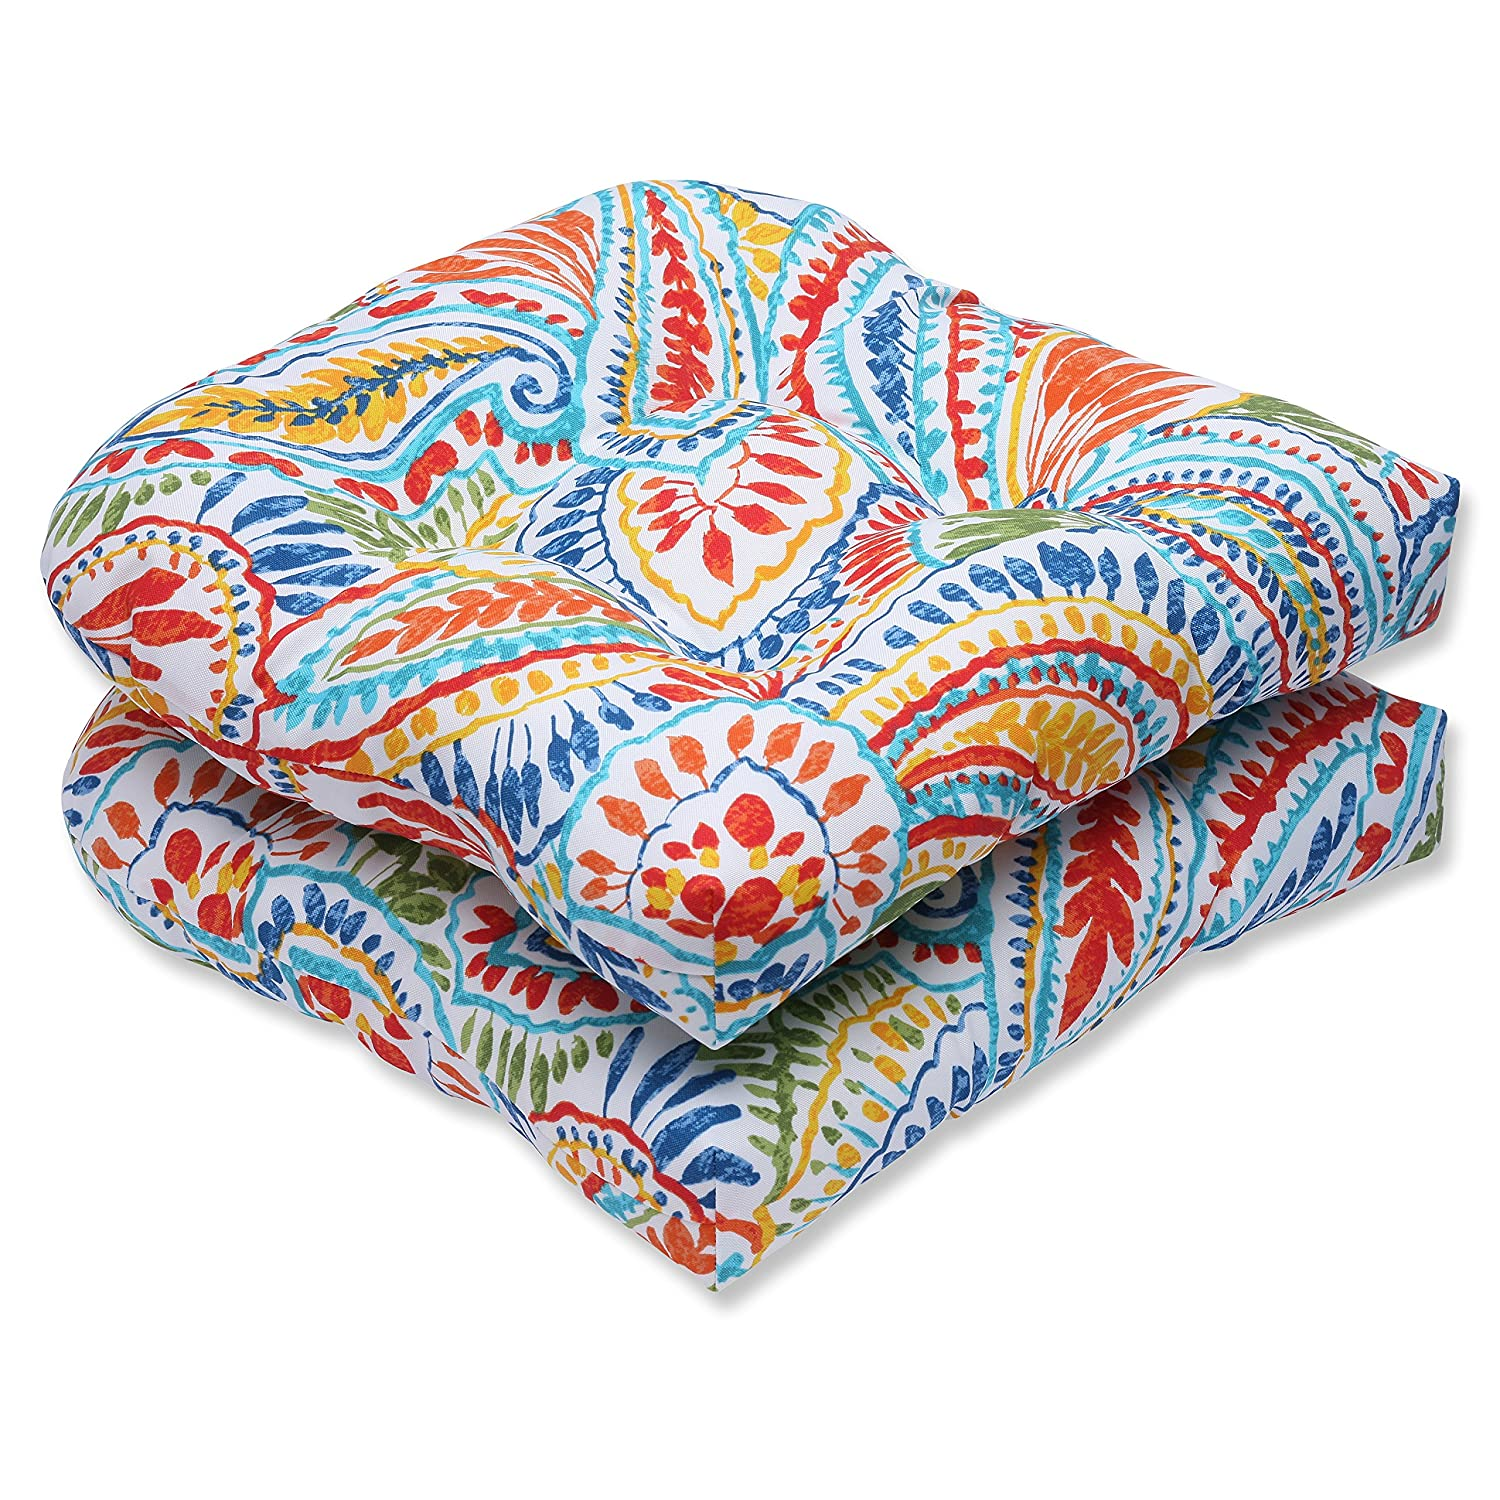 Pillow Perfect Outdoor Ummi Wicker Seat Cushion, Multicolored, Set of 2